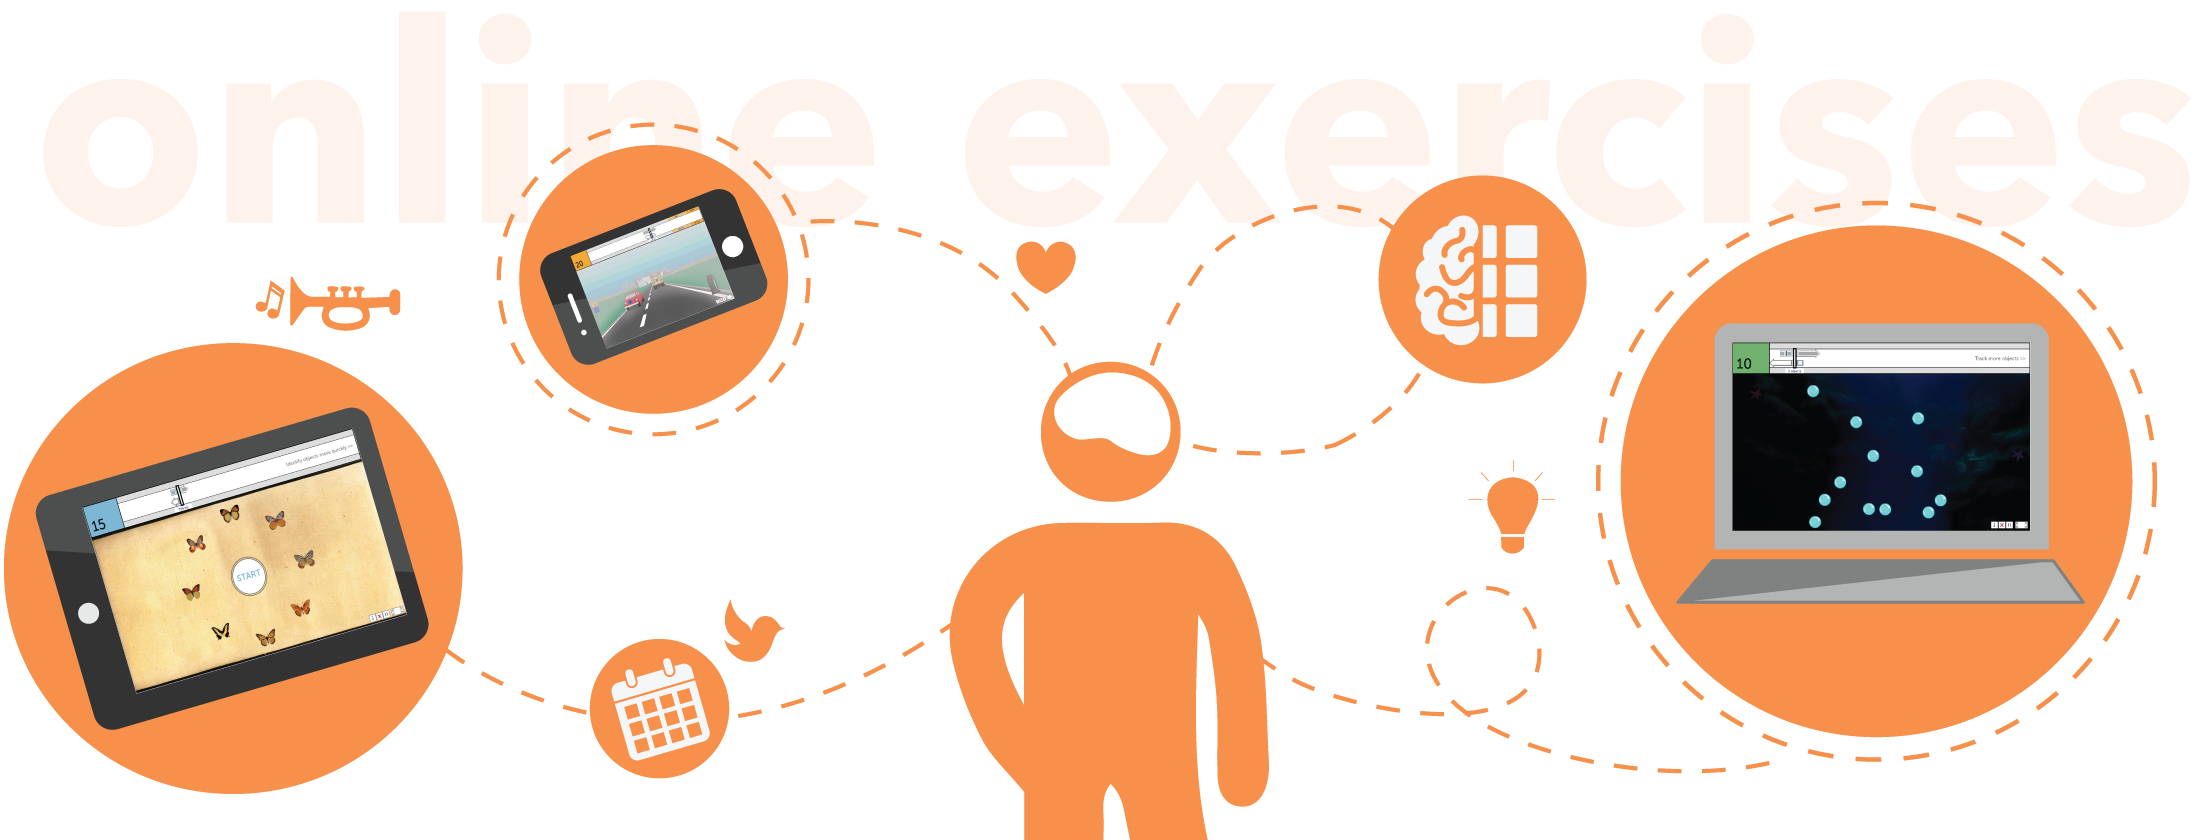 Exercising clipart brain exercise. What is brainhq from